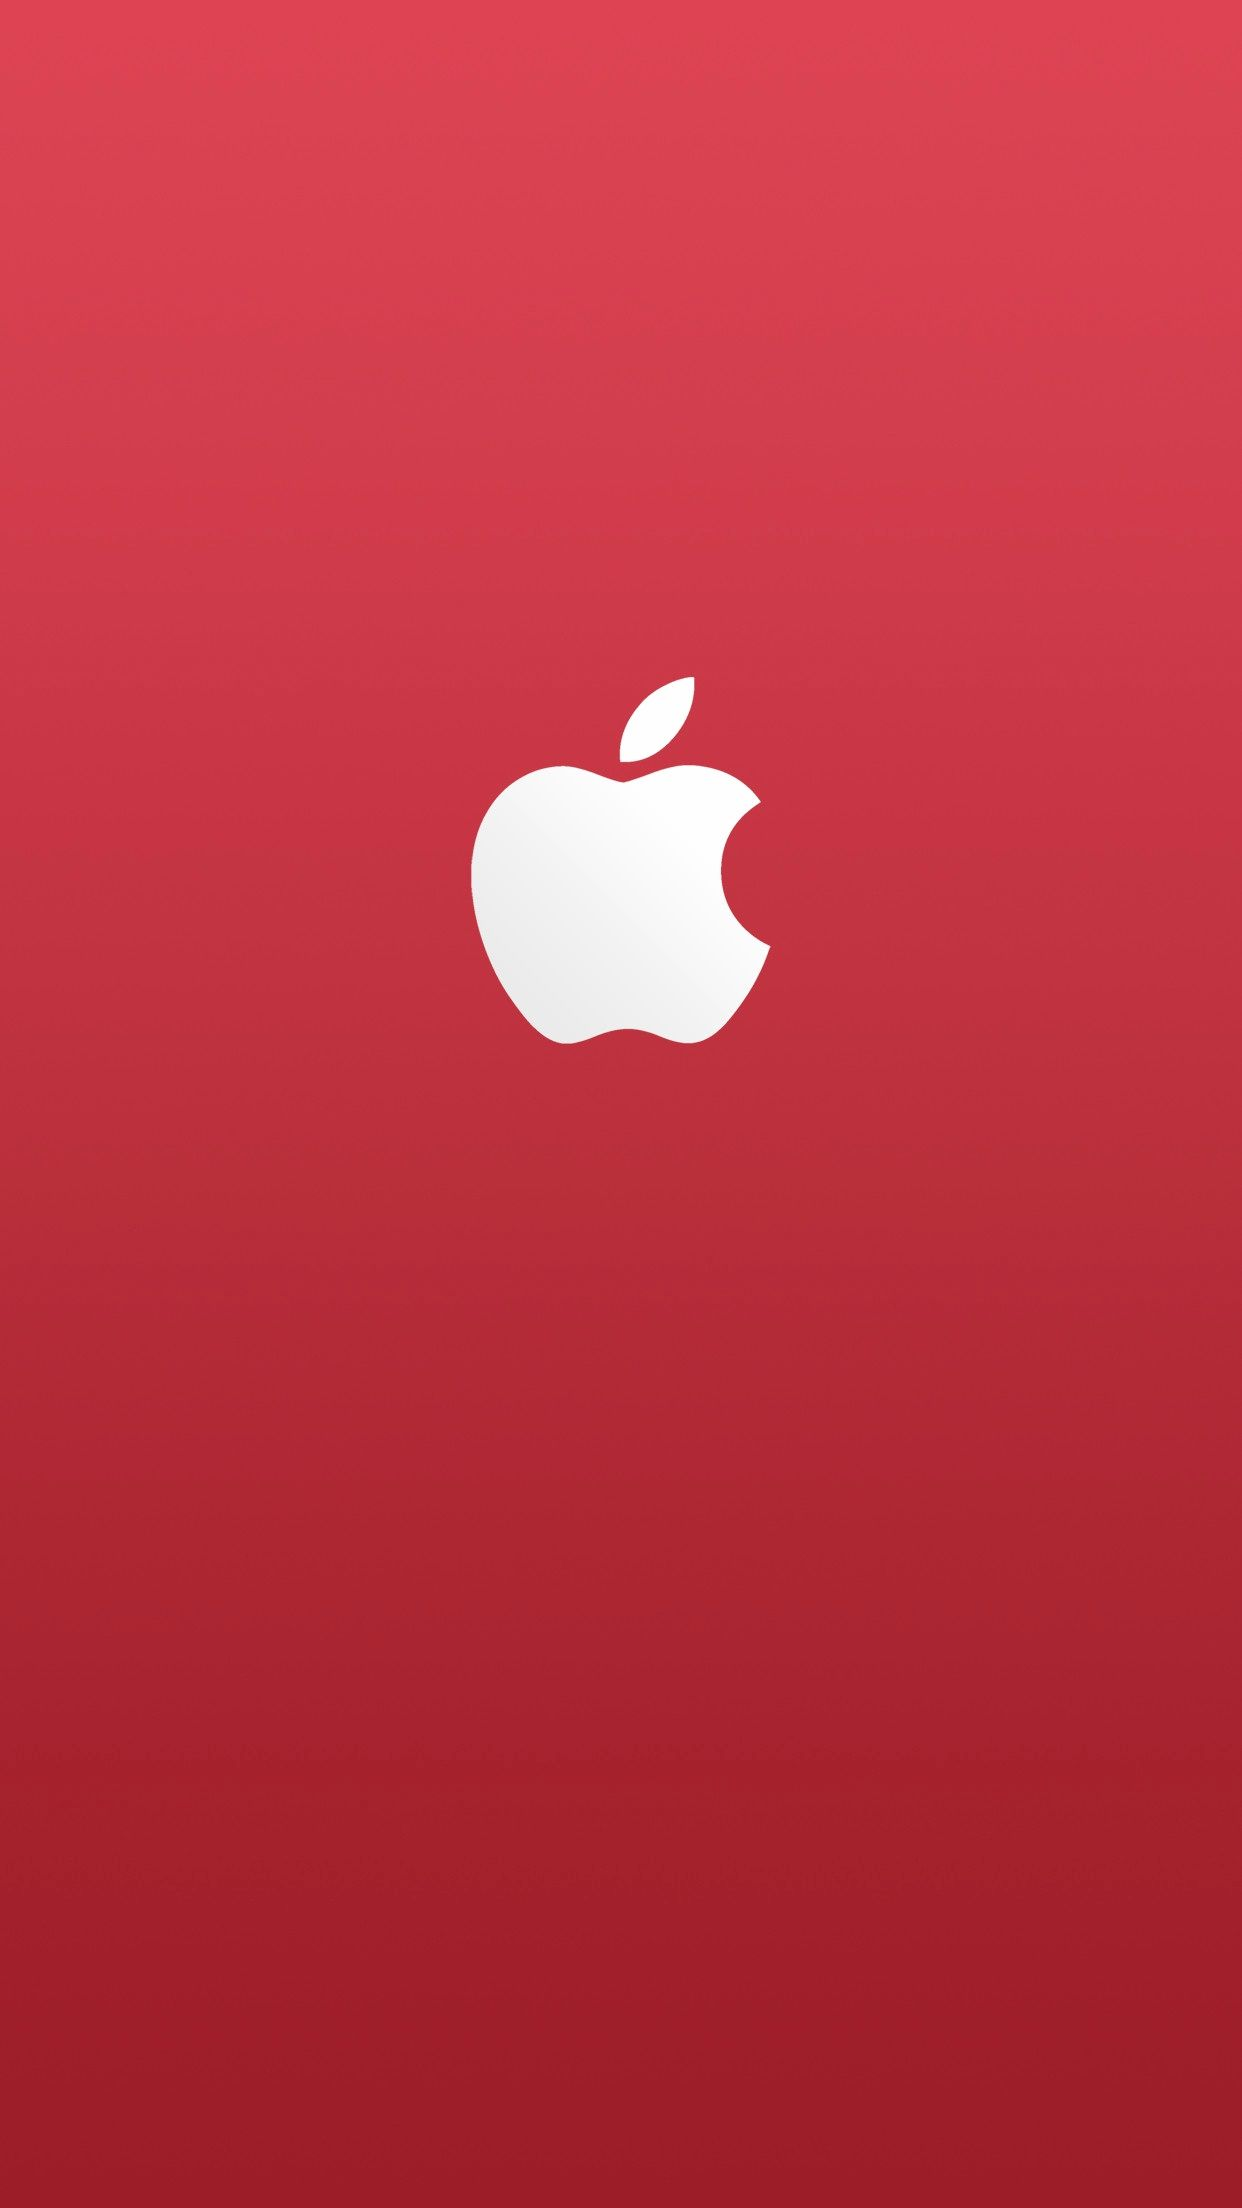 4k Apple Wallpapers Top Free 4k Apple Backgrounds